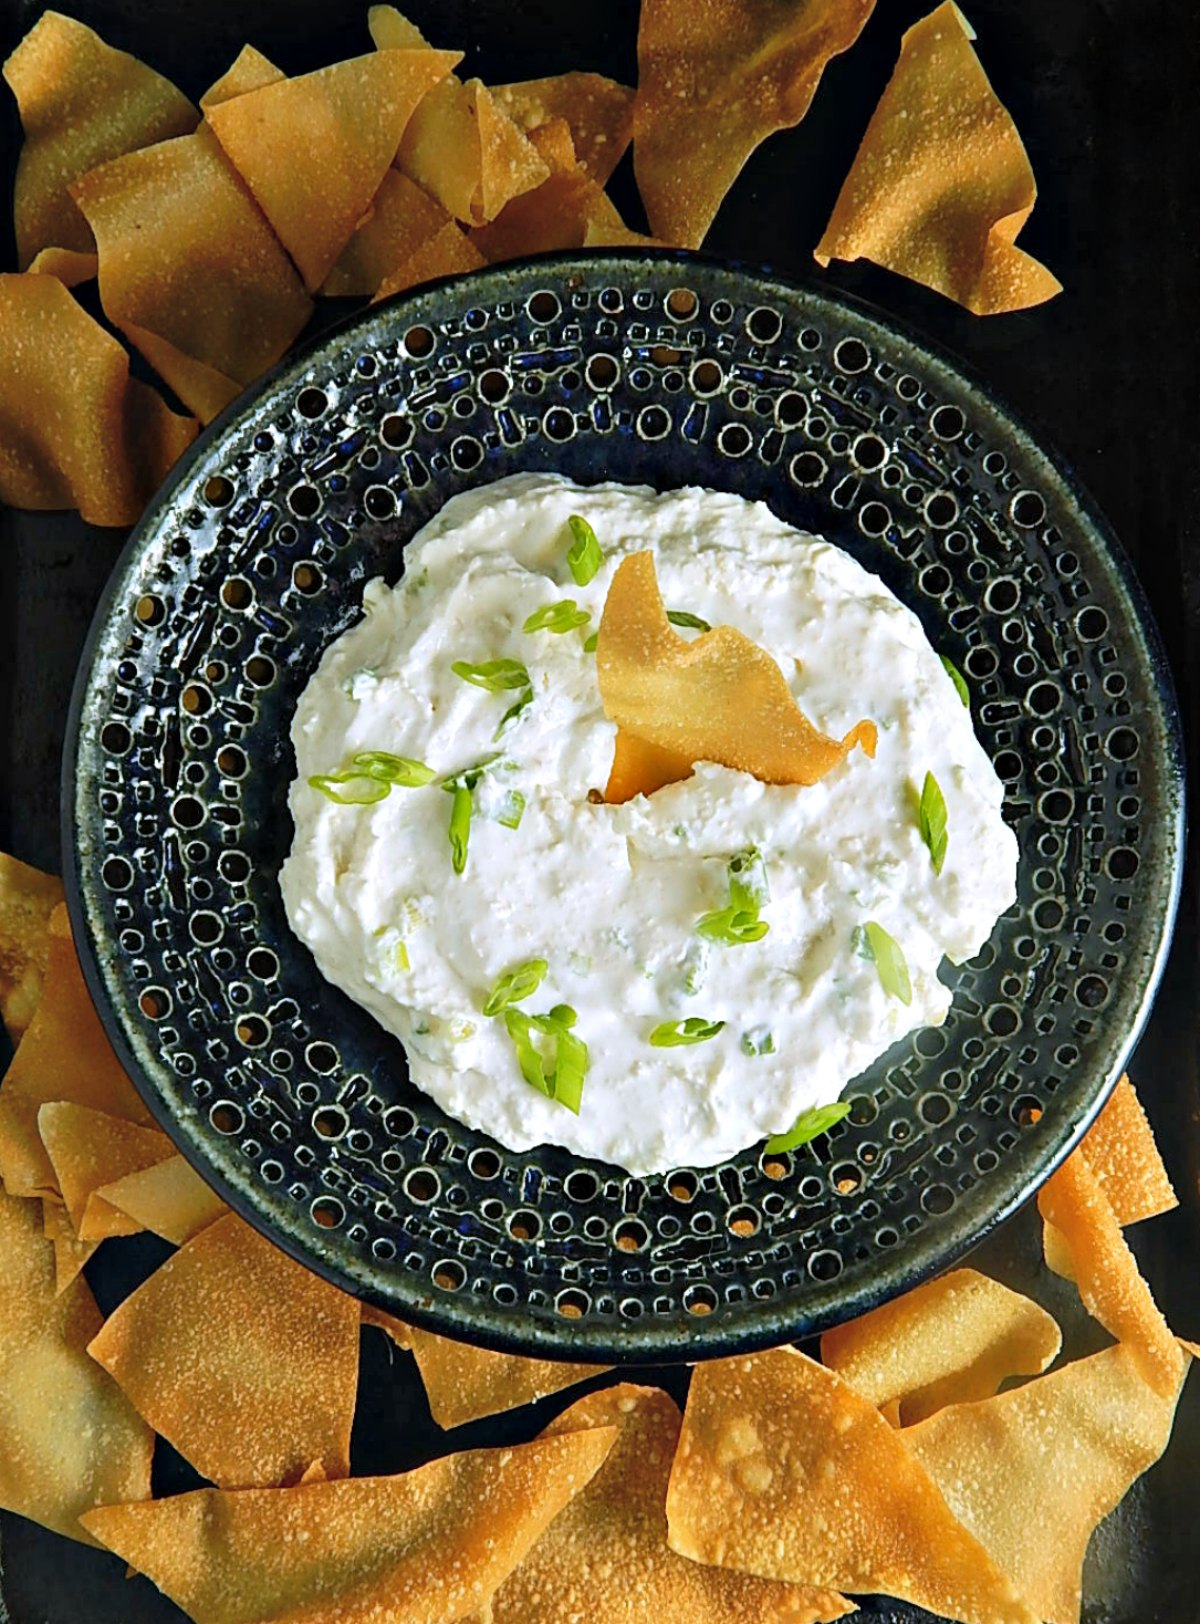 Creamy Crab Rangoon Dip with Wonton Chips Baked or Fried